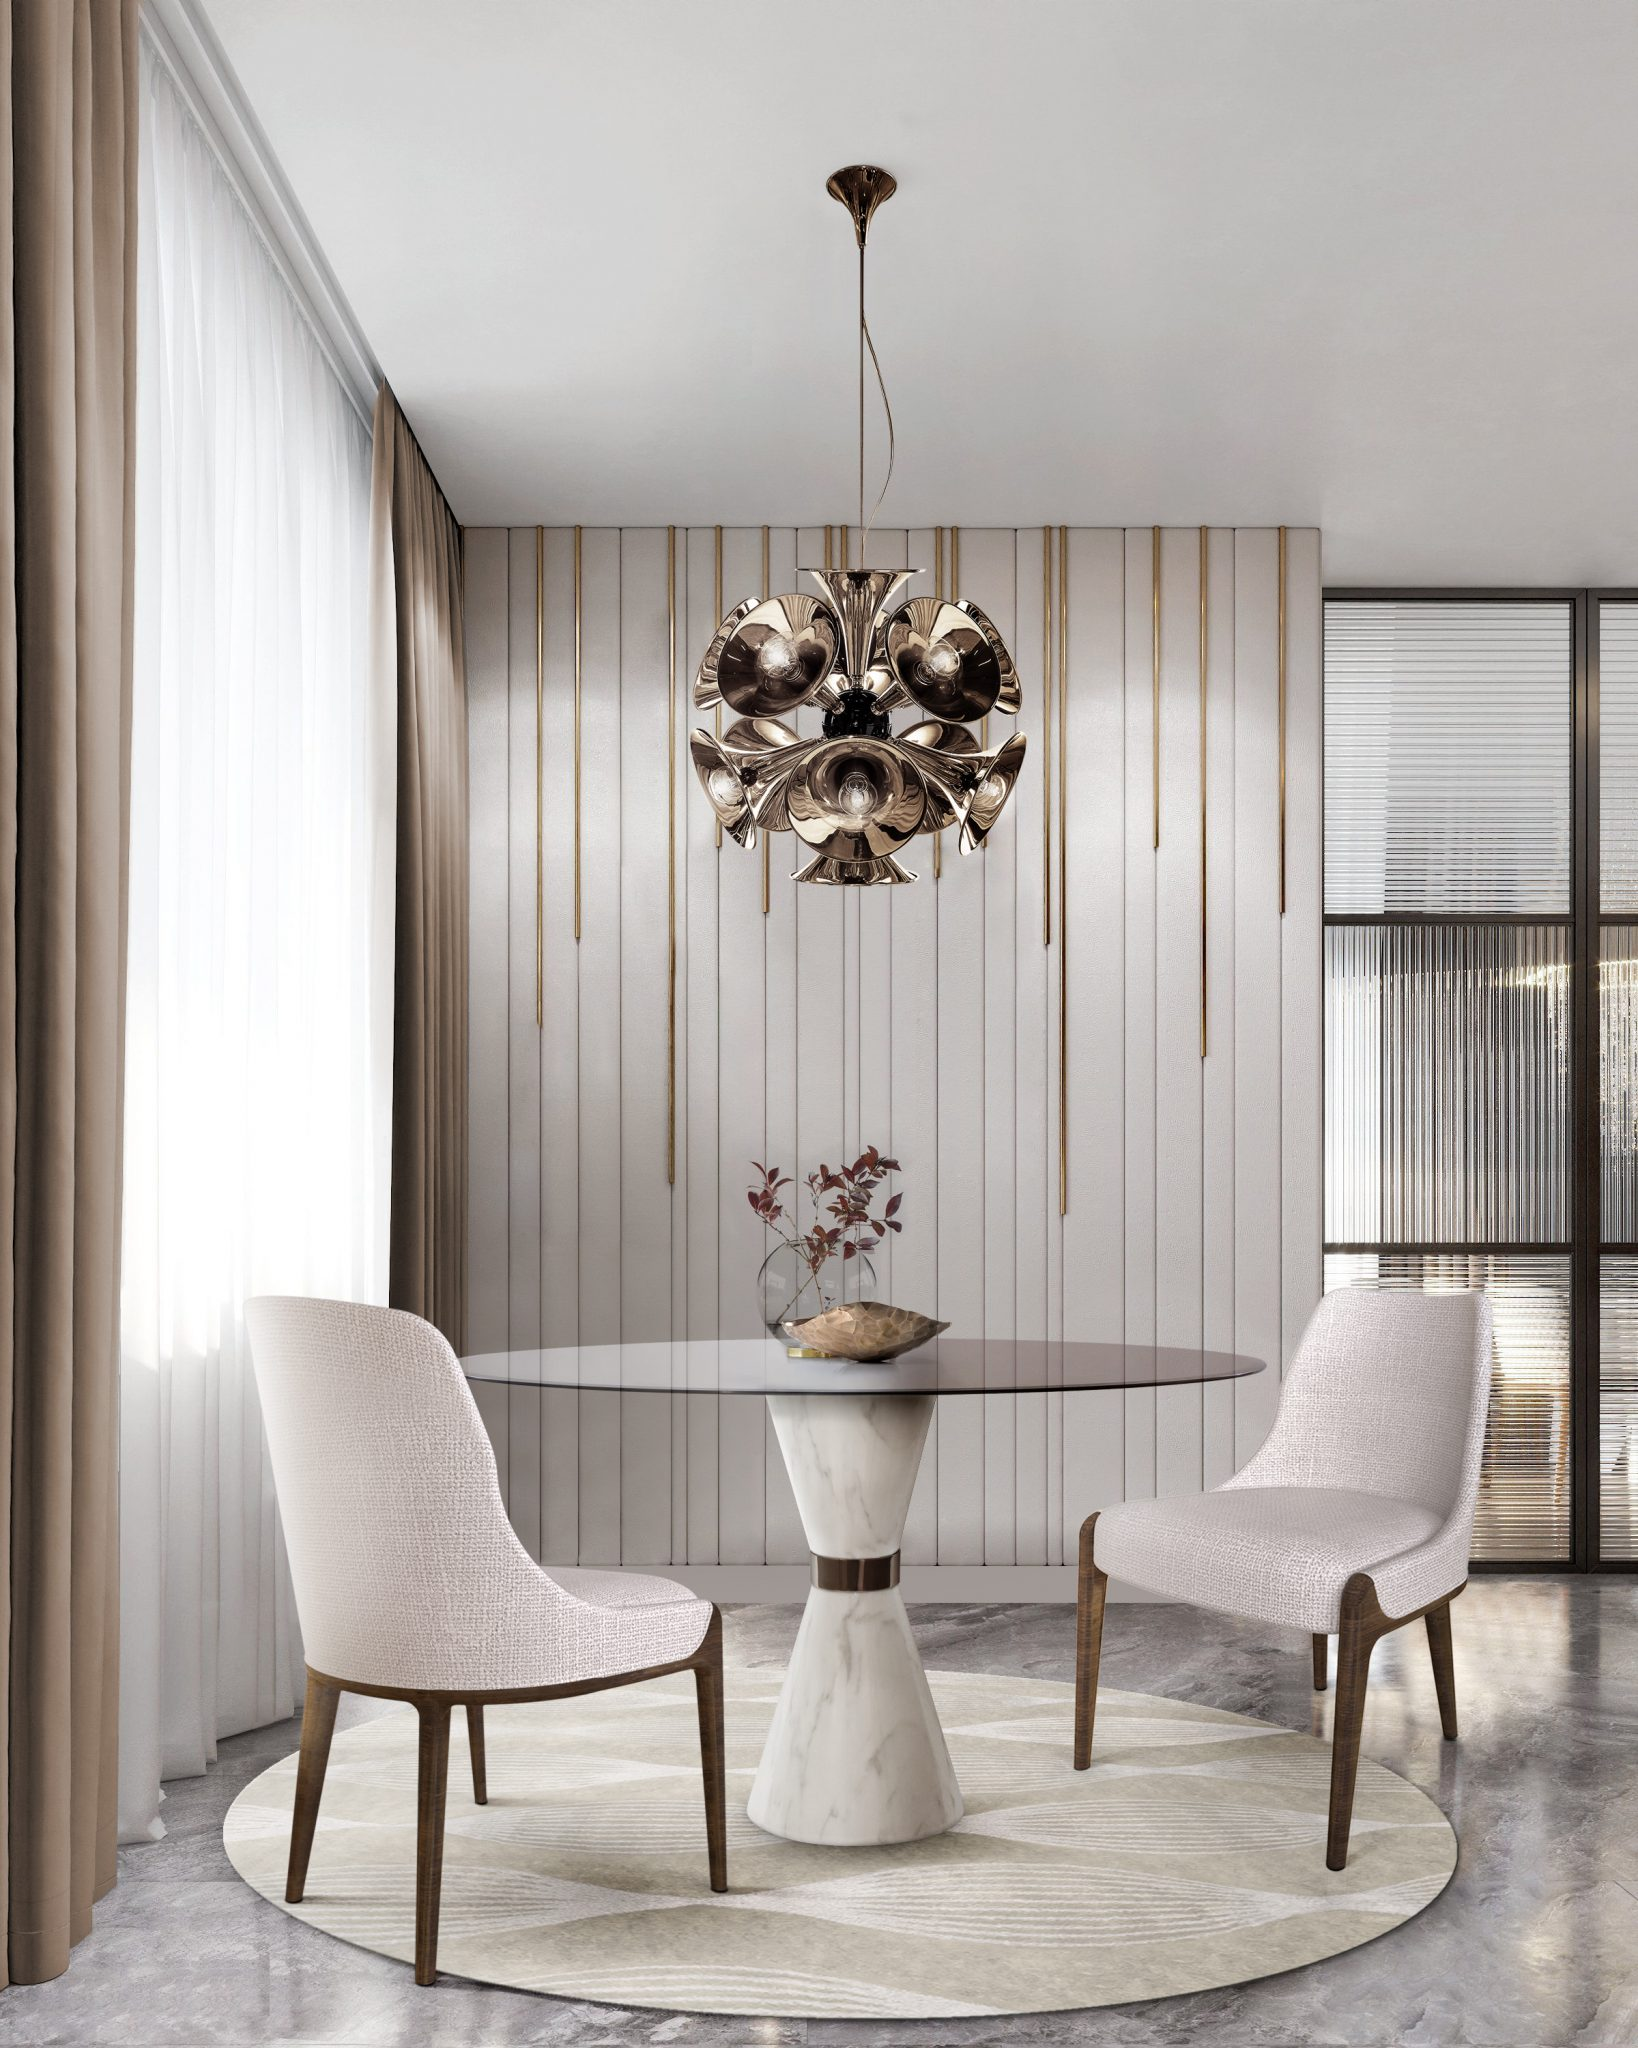 THE BEST LIGHTING FOR YOUR DINING ROOM